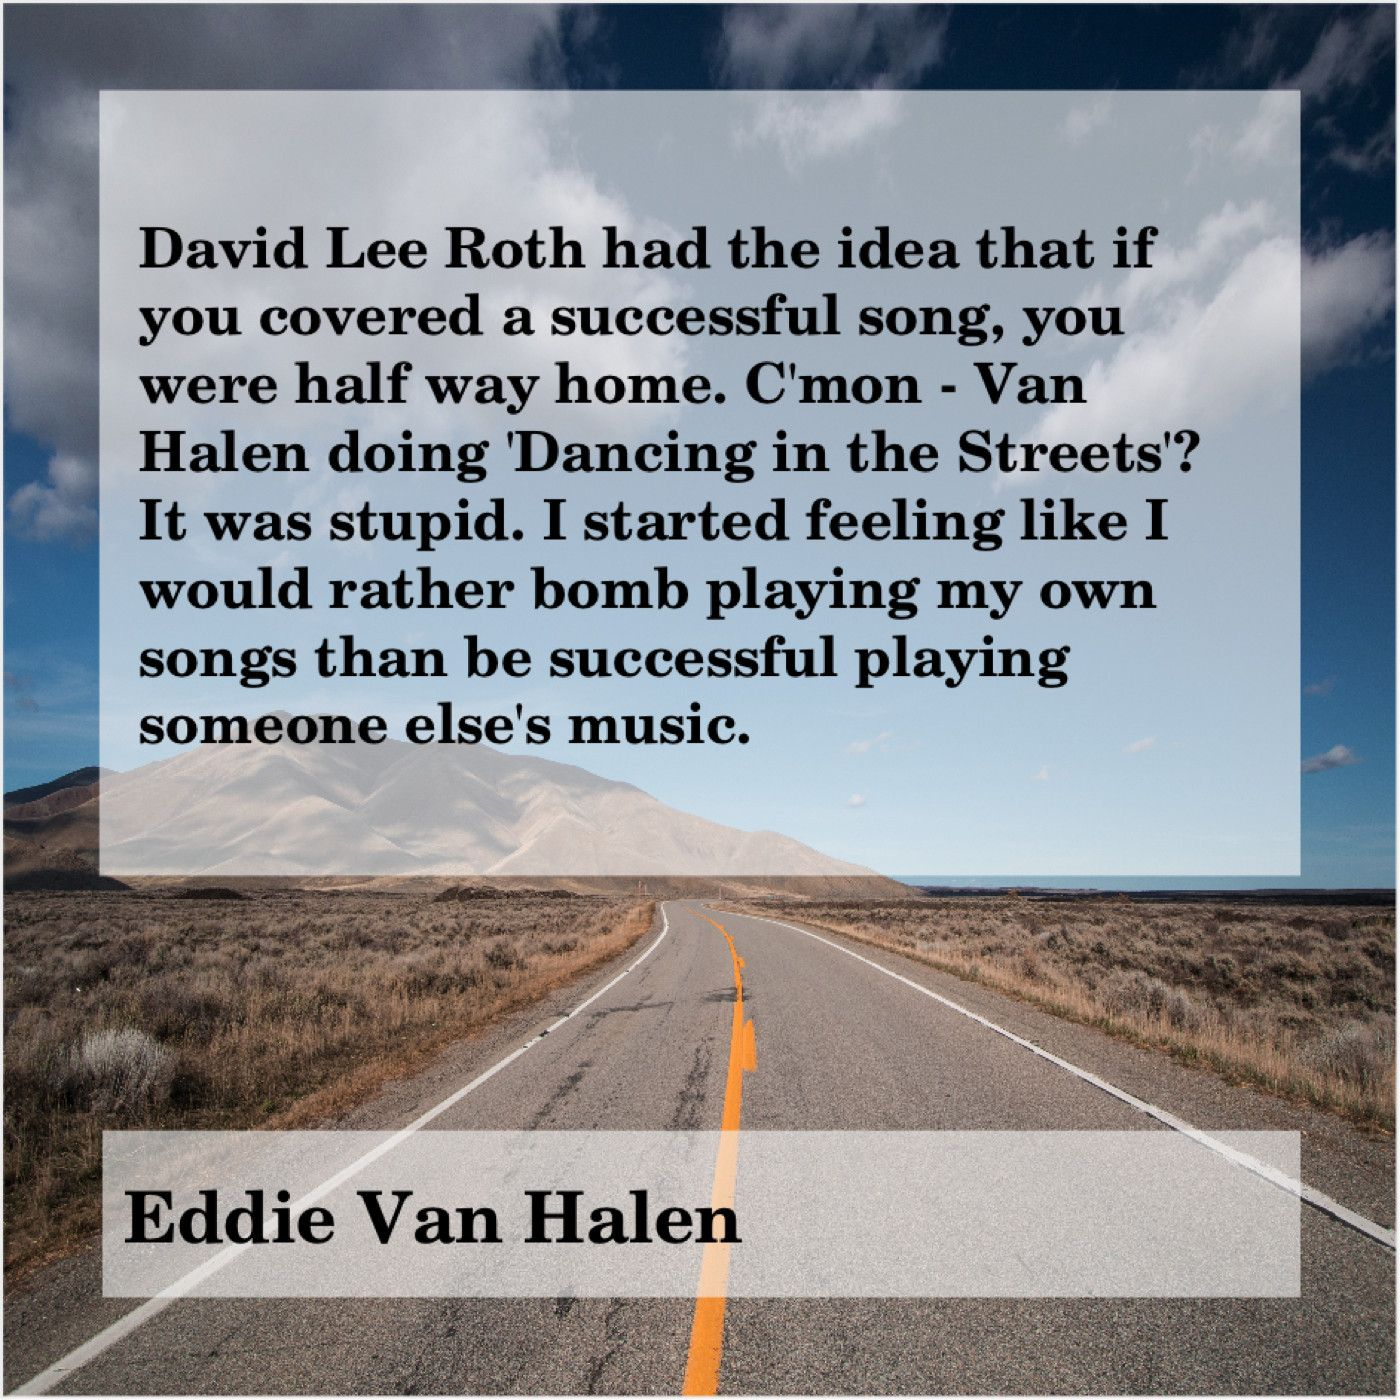 Eddie Van Halen David Lee Roth Had The David Lee Roth David Lee Evangeline Lilly